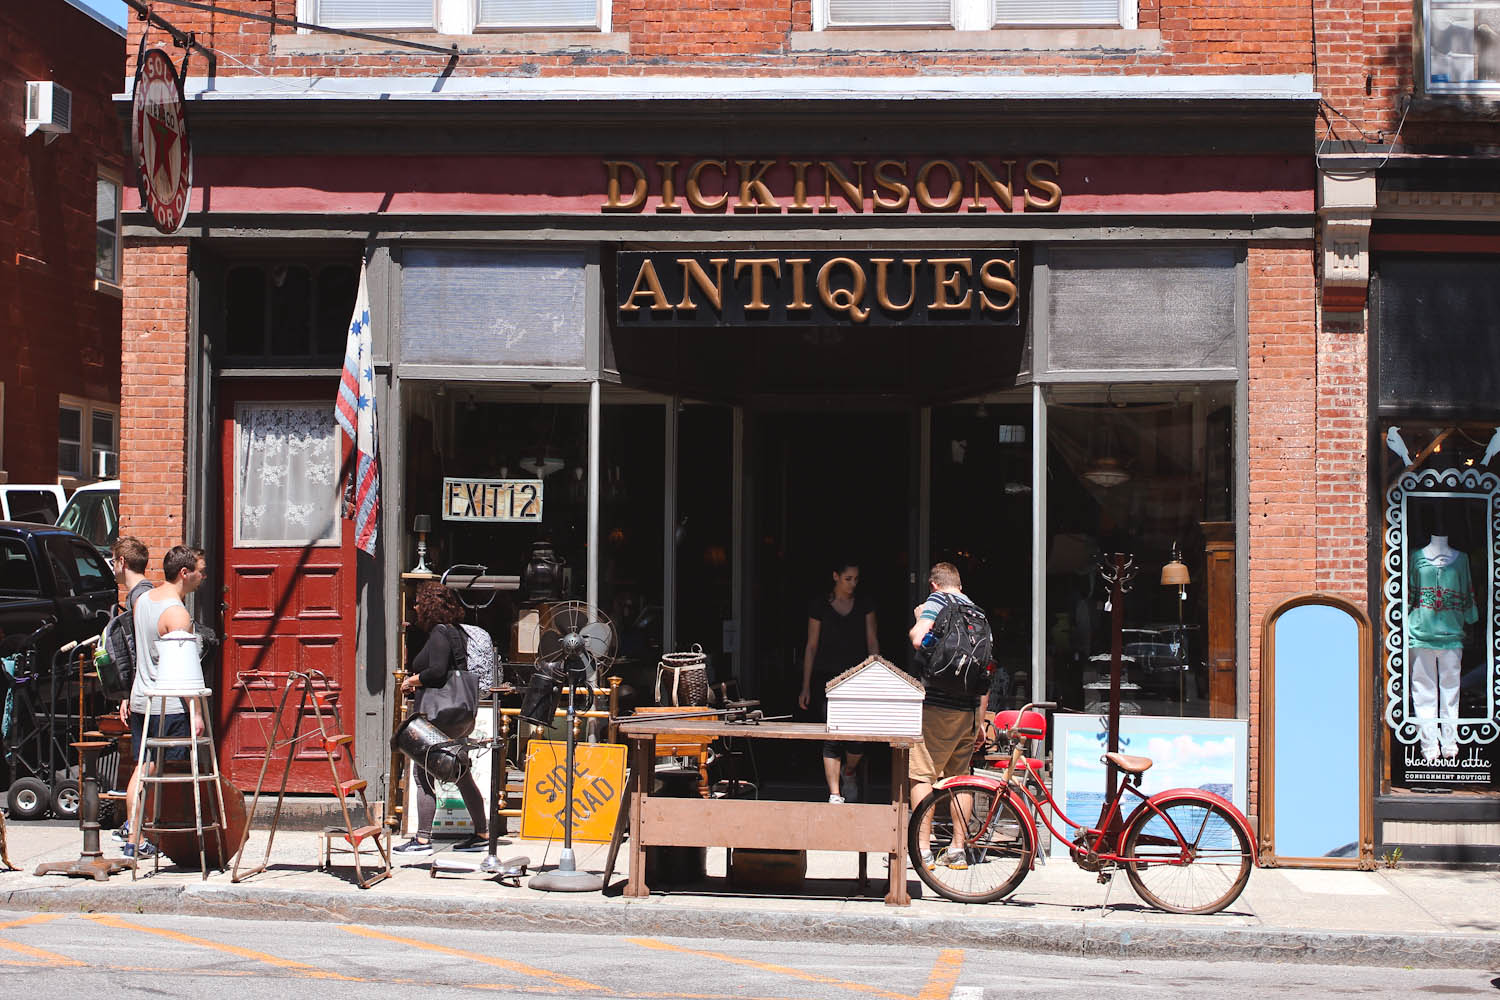 new york antique stores The best secret antique spots in upstate NY new york antique stores